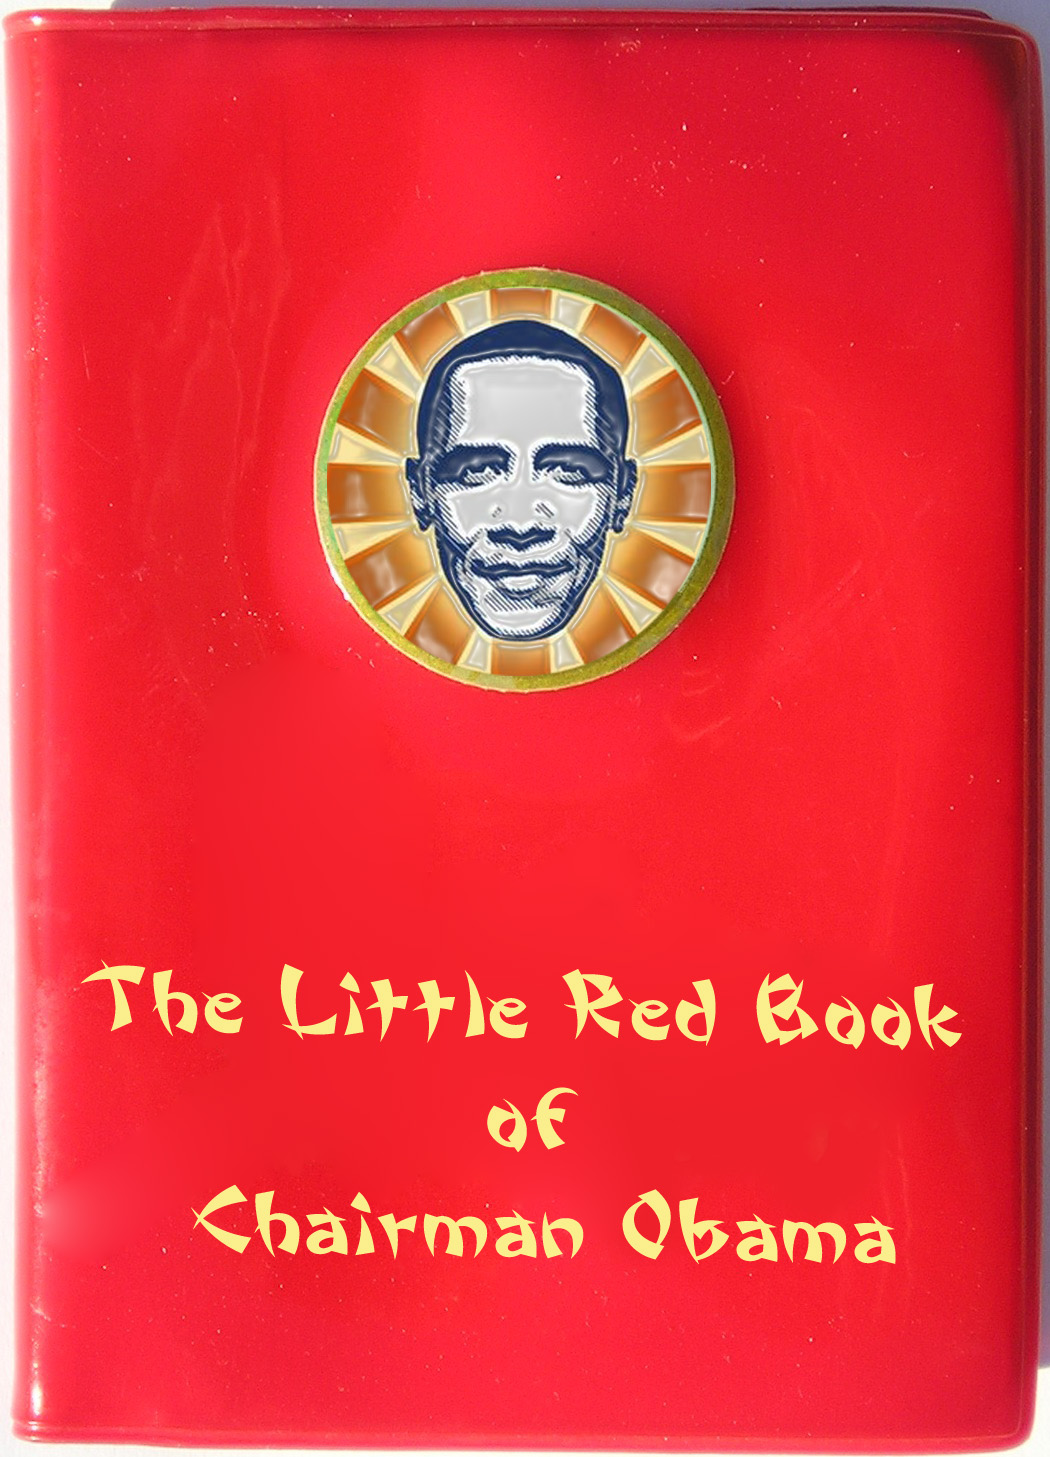 obama communist little red bok